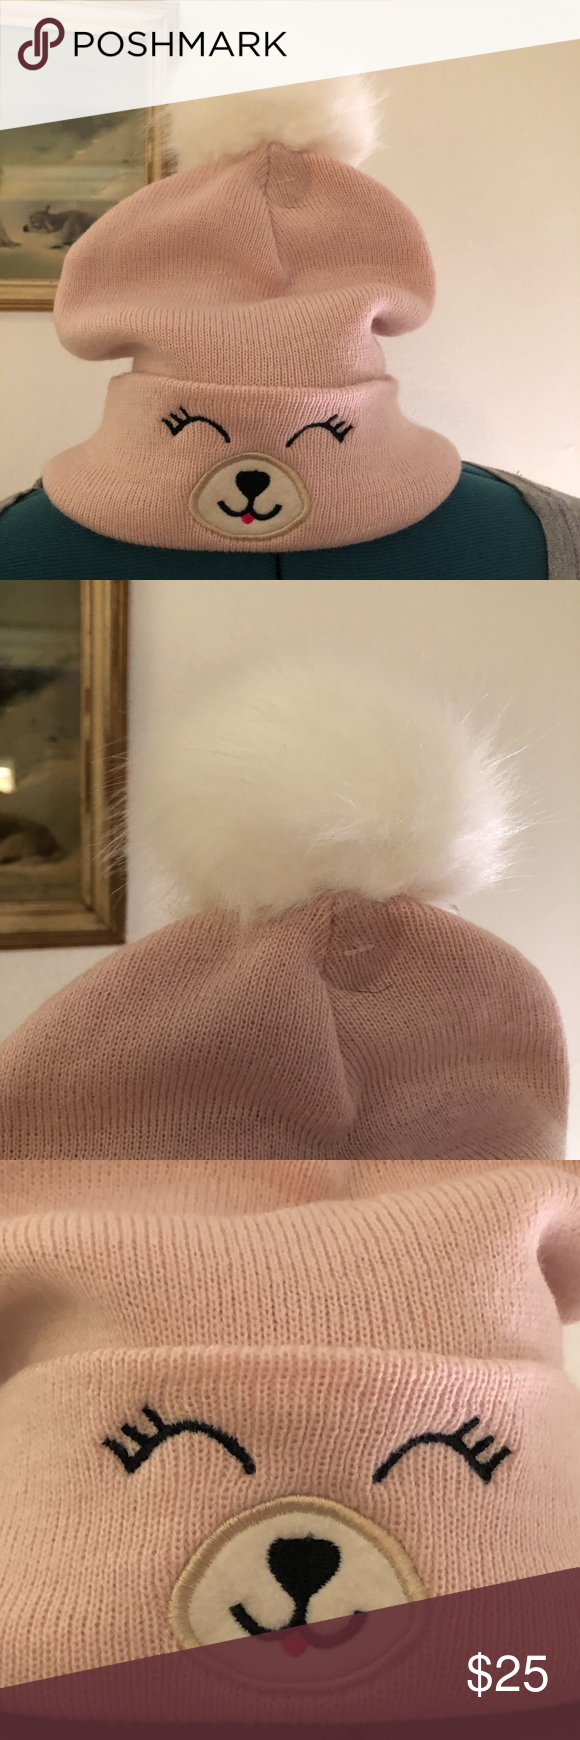 d837d4b4ee25e NEW~ Pink Llama Face POM POM Hat NWT Youre viewing a cute pink Llama face  knit pom pom beanie hat! New with tags. One size fits most. 100% Acrylic.